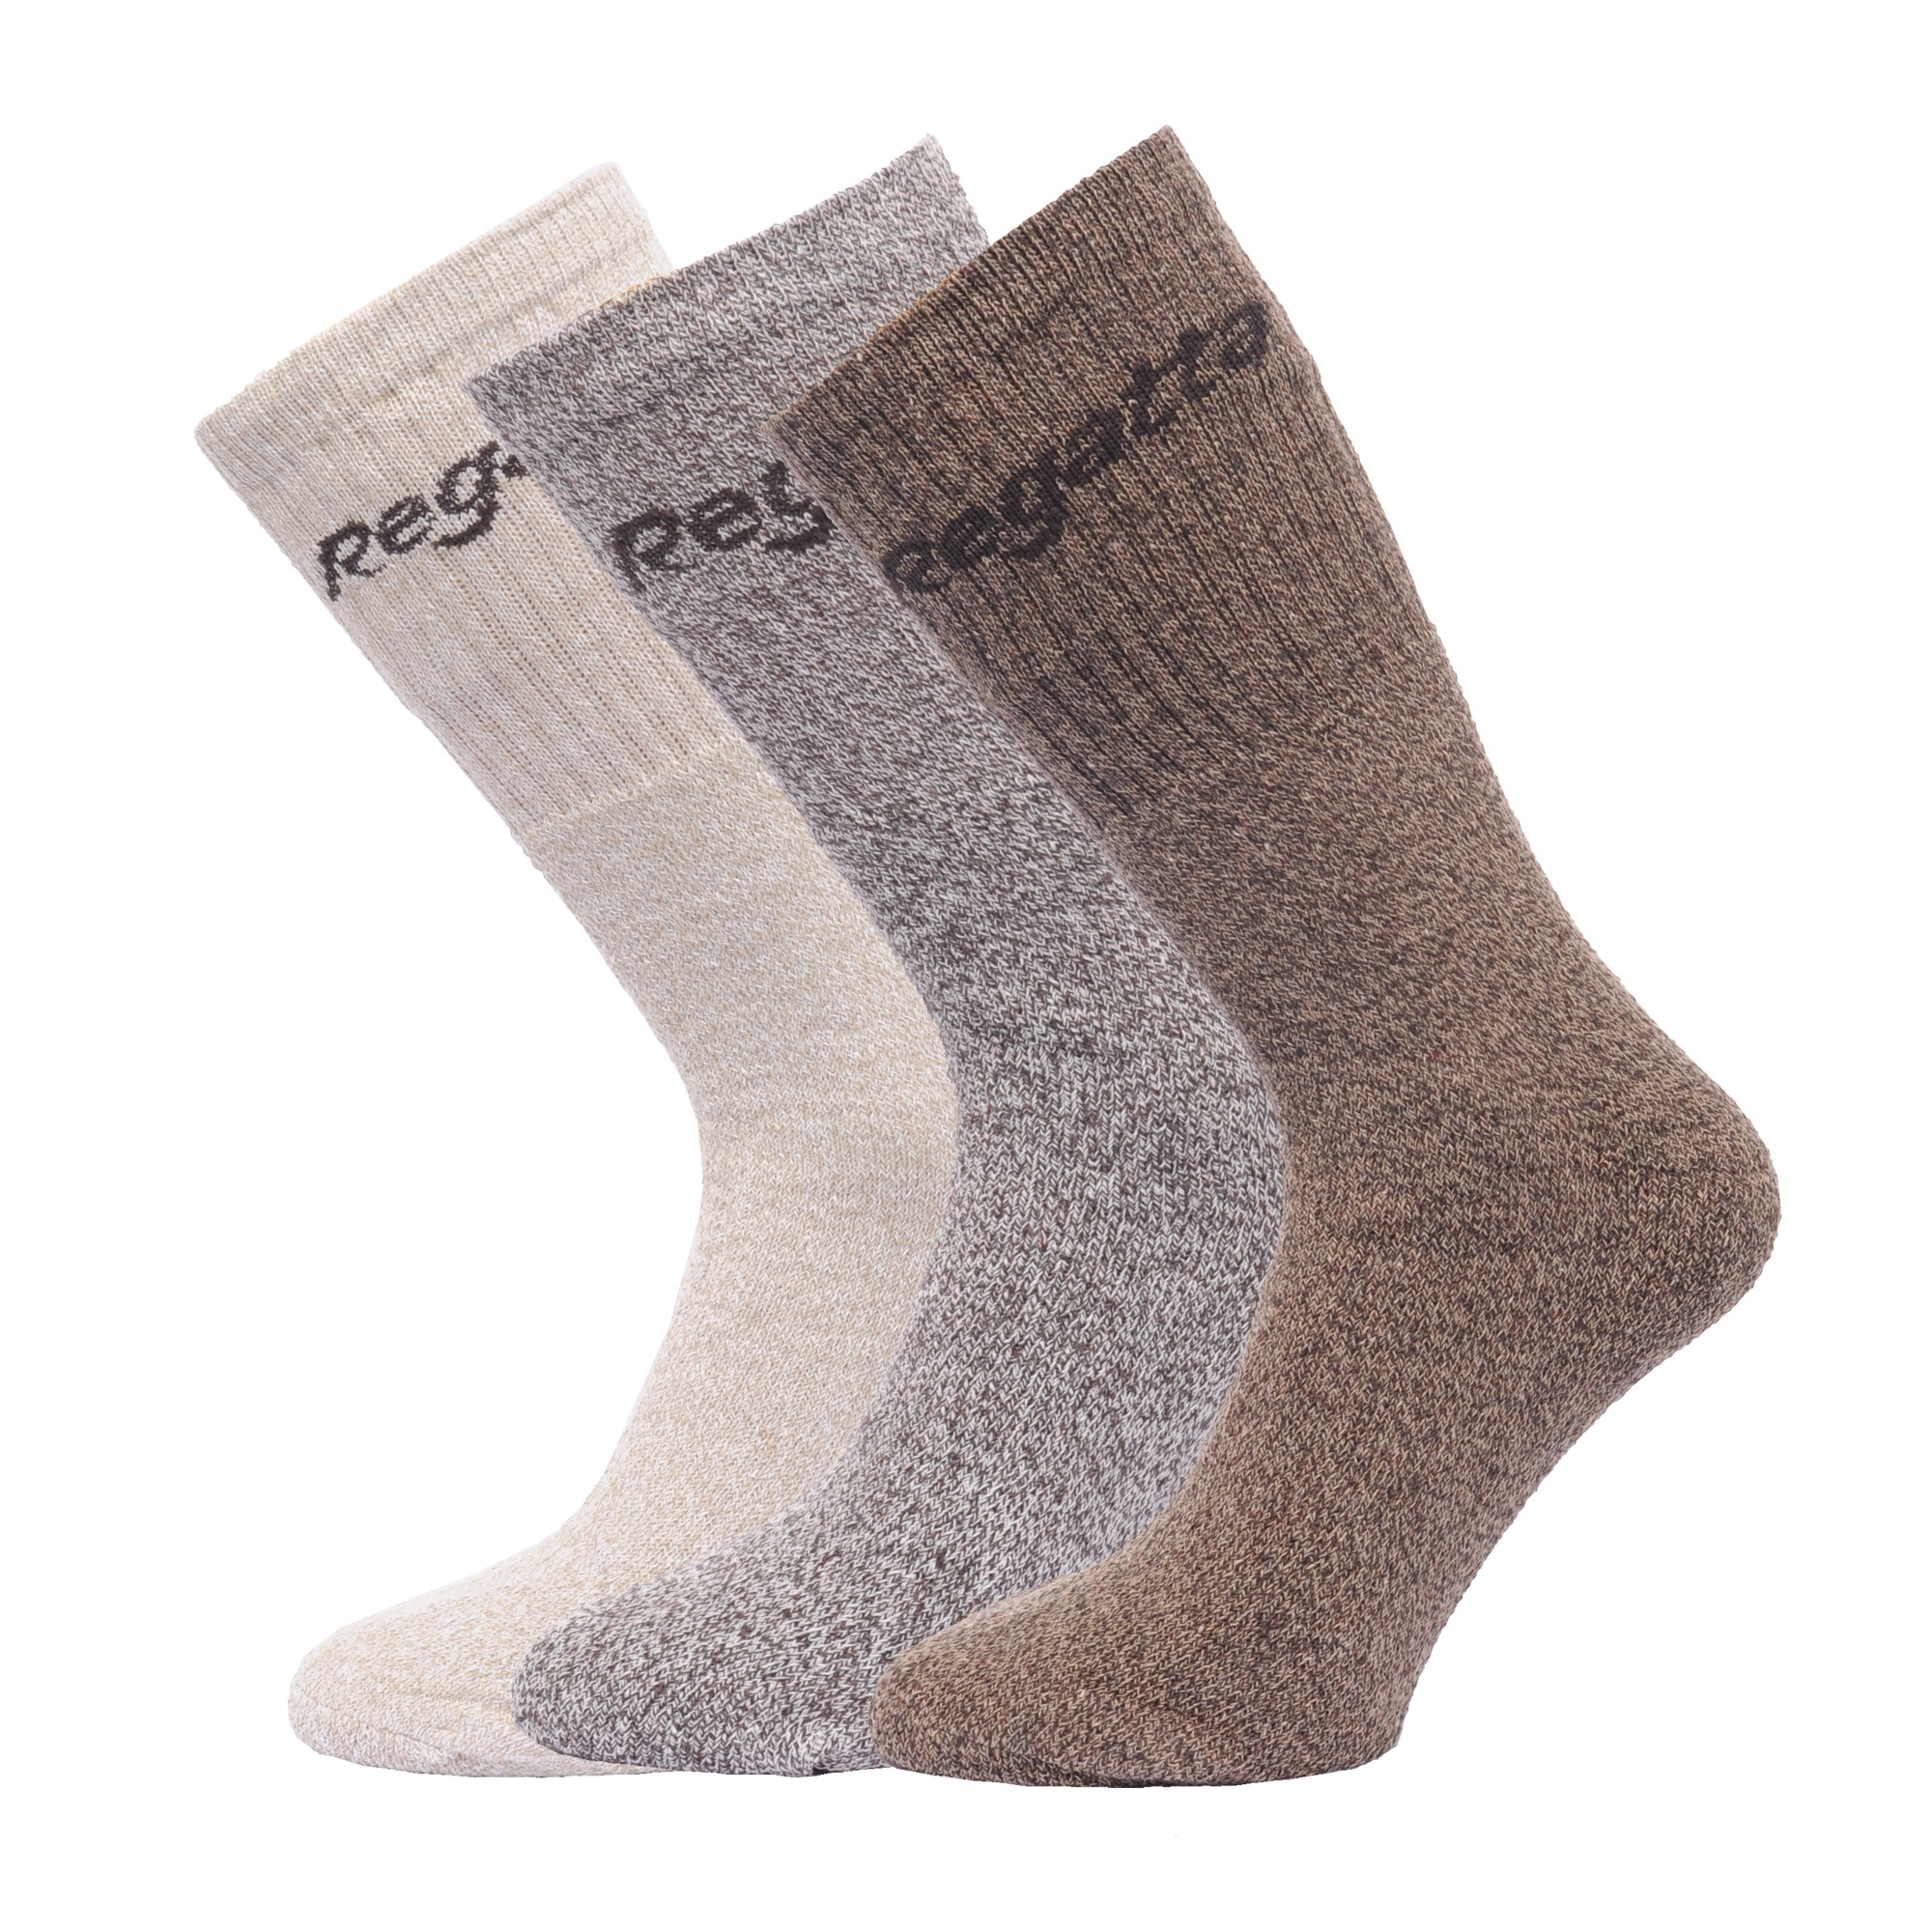 Regatta-Great-Outdoors-Mens-Cotton-Rich-Casual-Socks-Pack-Of-3-RG786 thumbnail 7